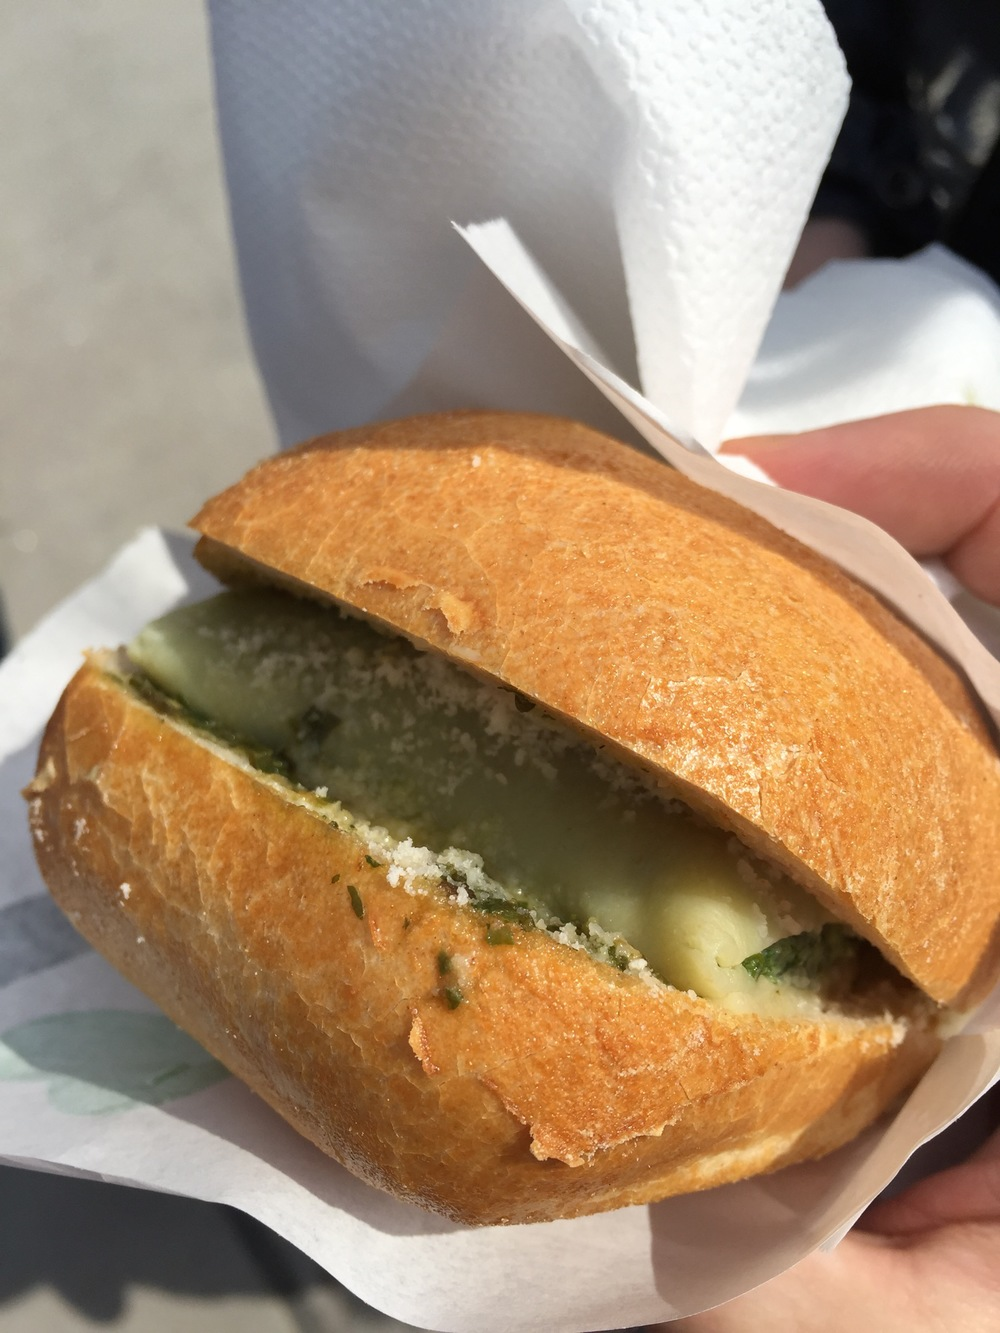 The vegetarian Maultasche with pesto and parmesan on a ciabatta roll